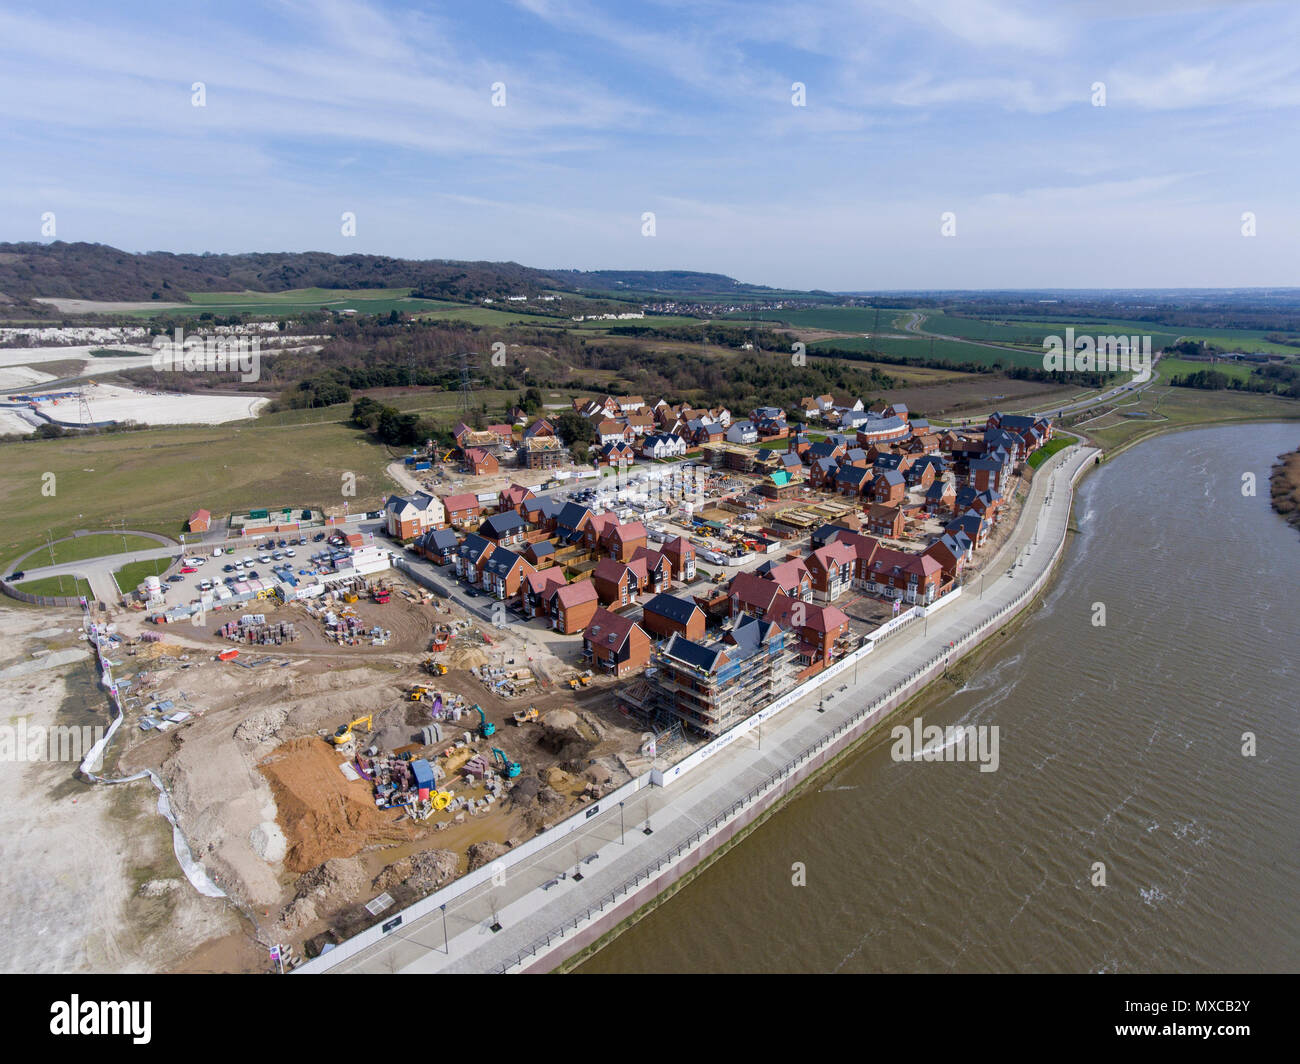 The newly created Peters Village, still under construction, on the bank of the Medway in Kent, England - Stock Image